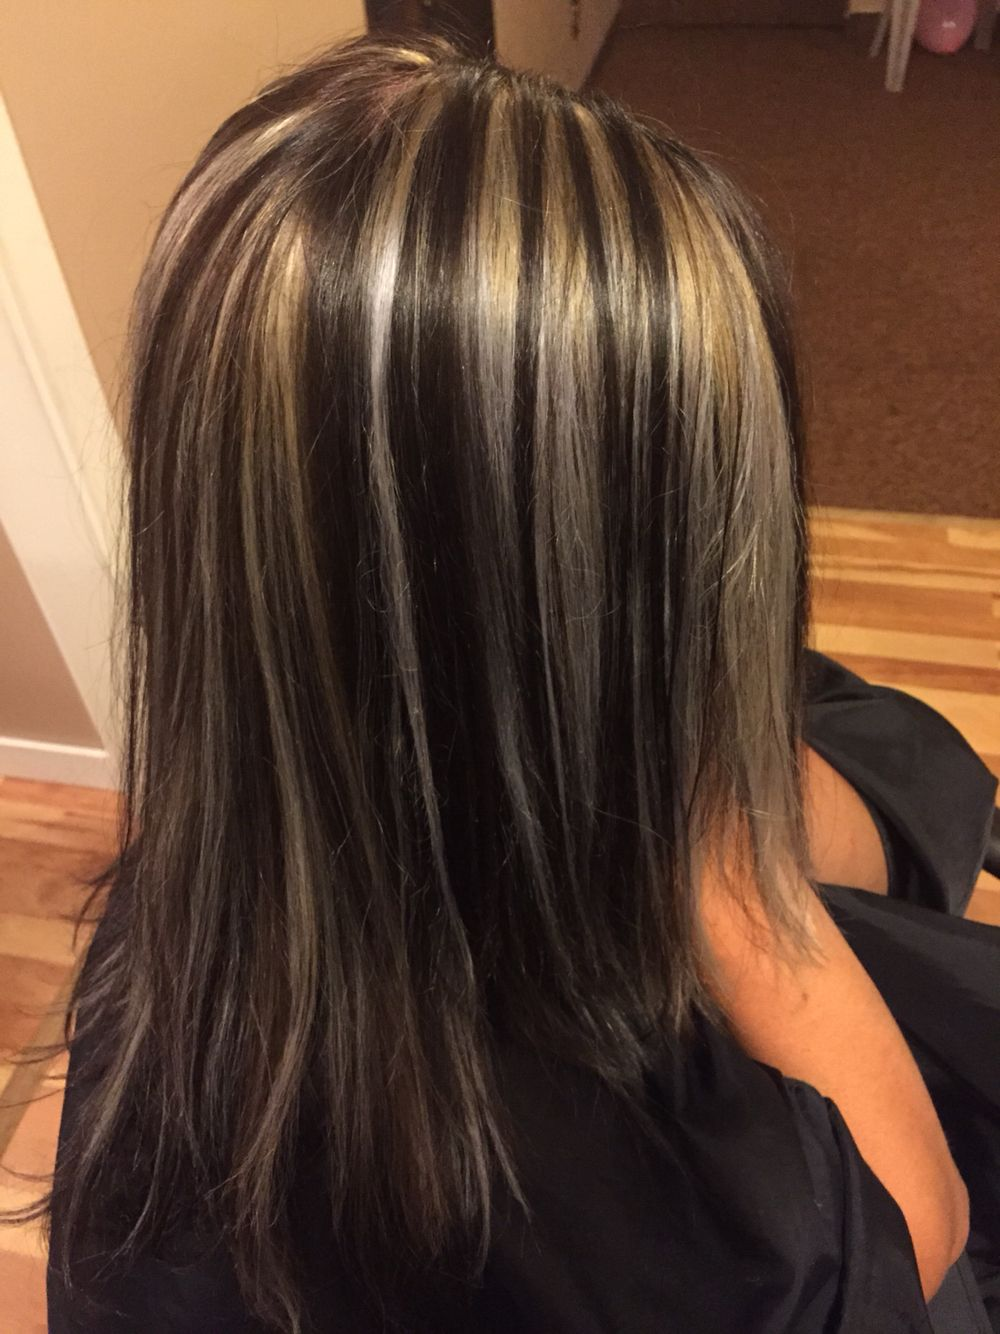 Dark Brown With Blond Chunks Hair Styles Brown Hair With Blonde Highlights Hair Inspiration Color